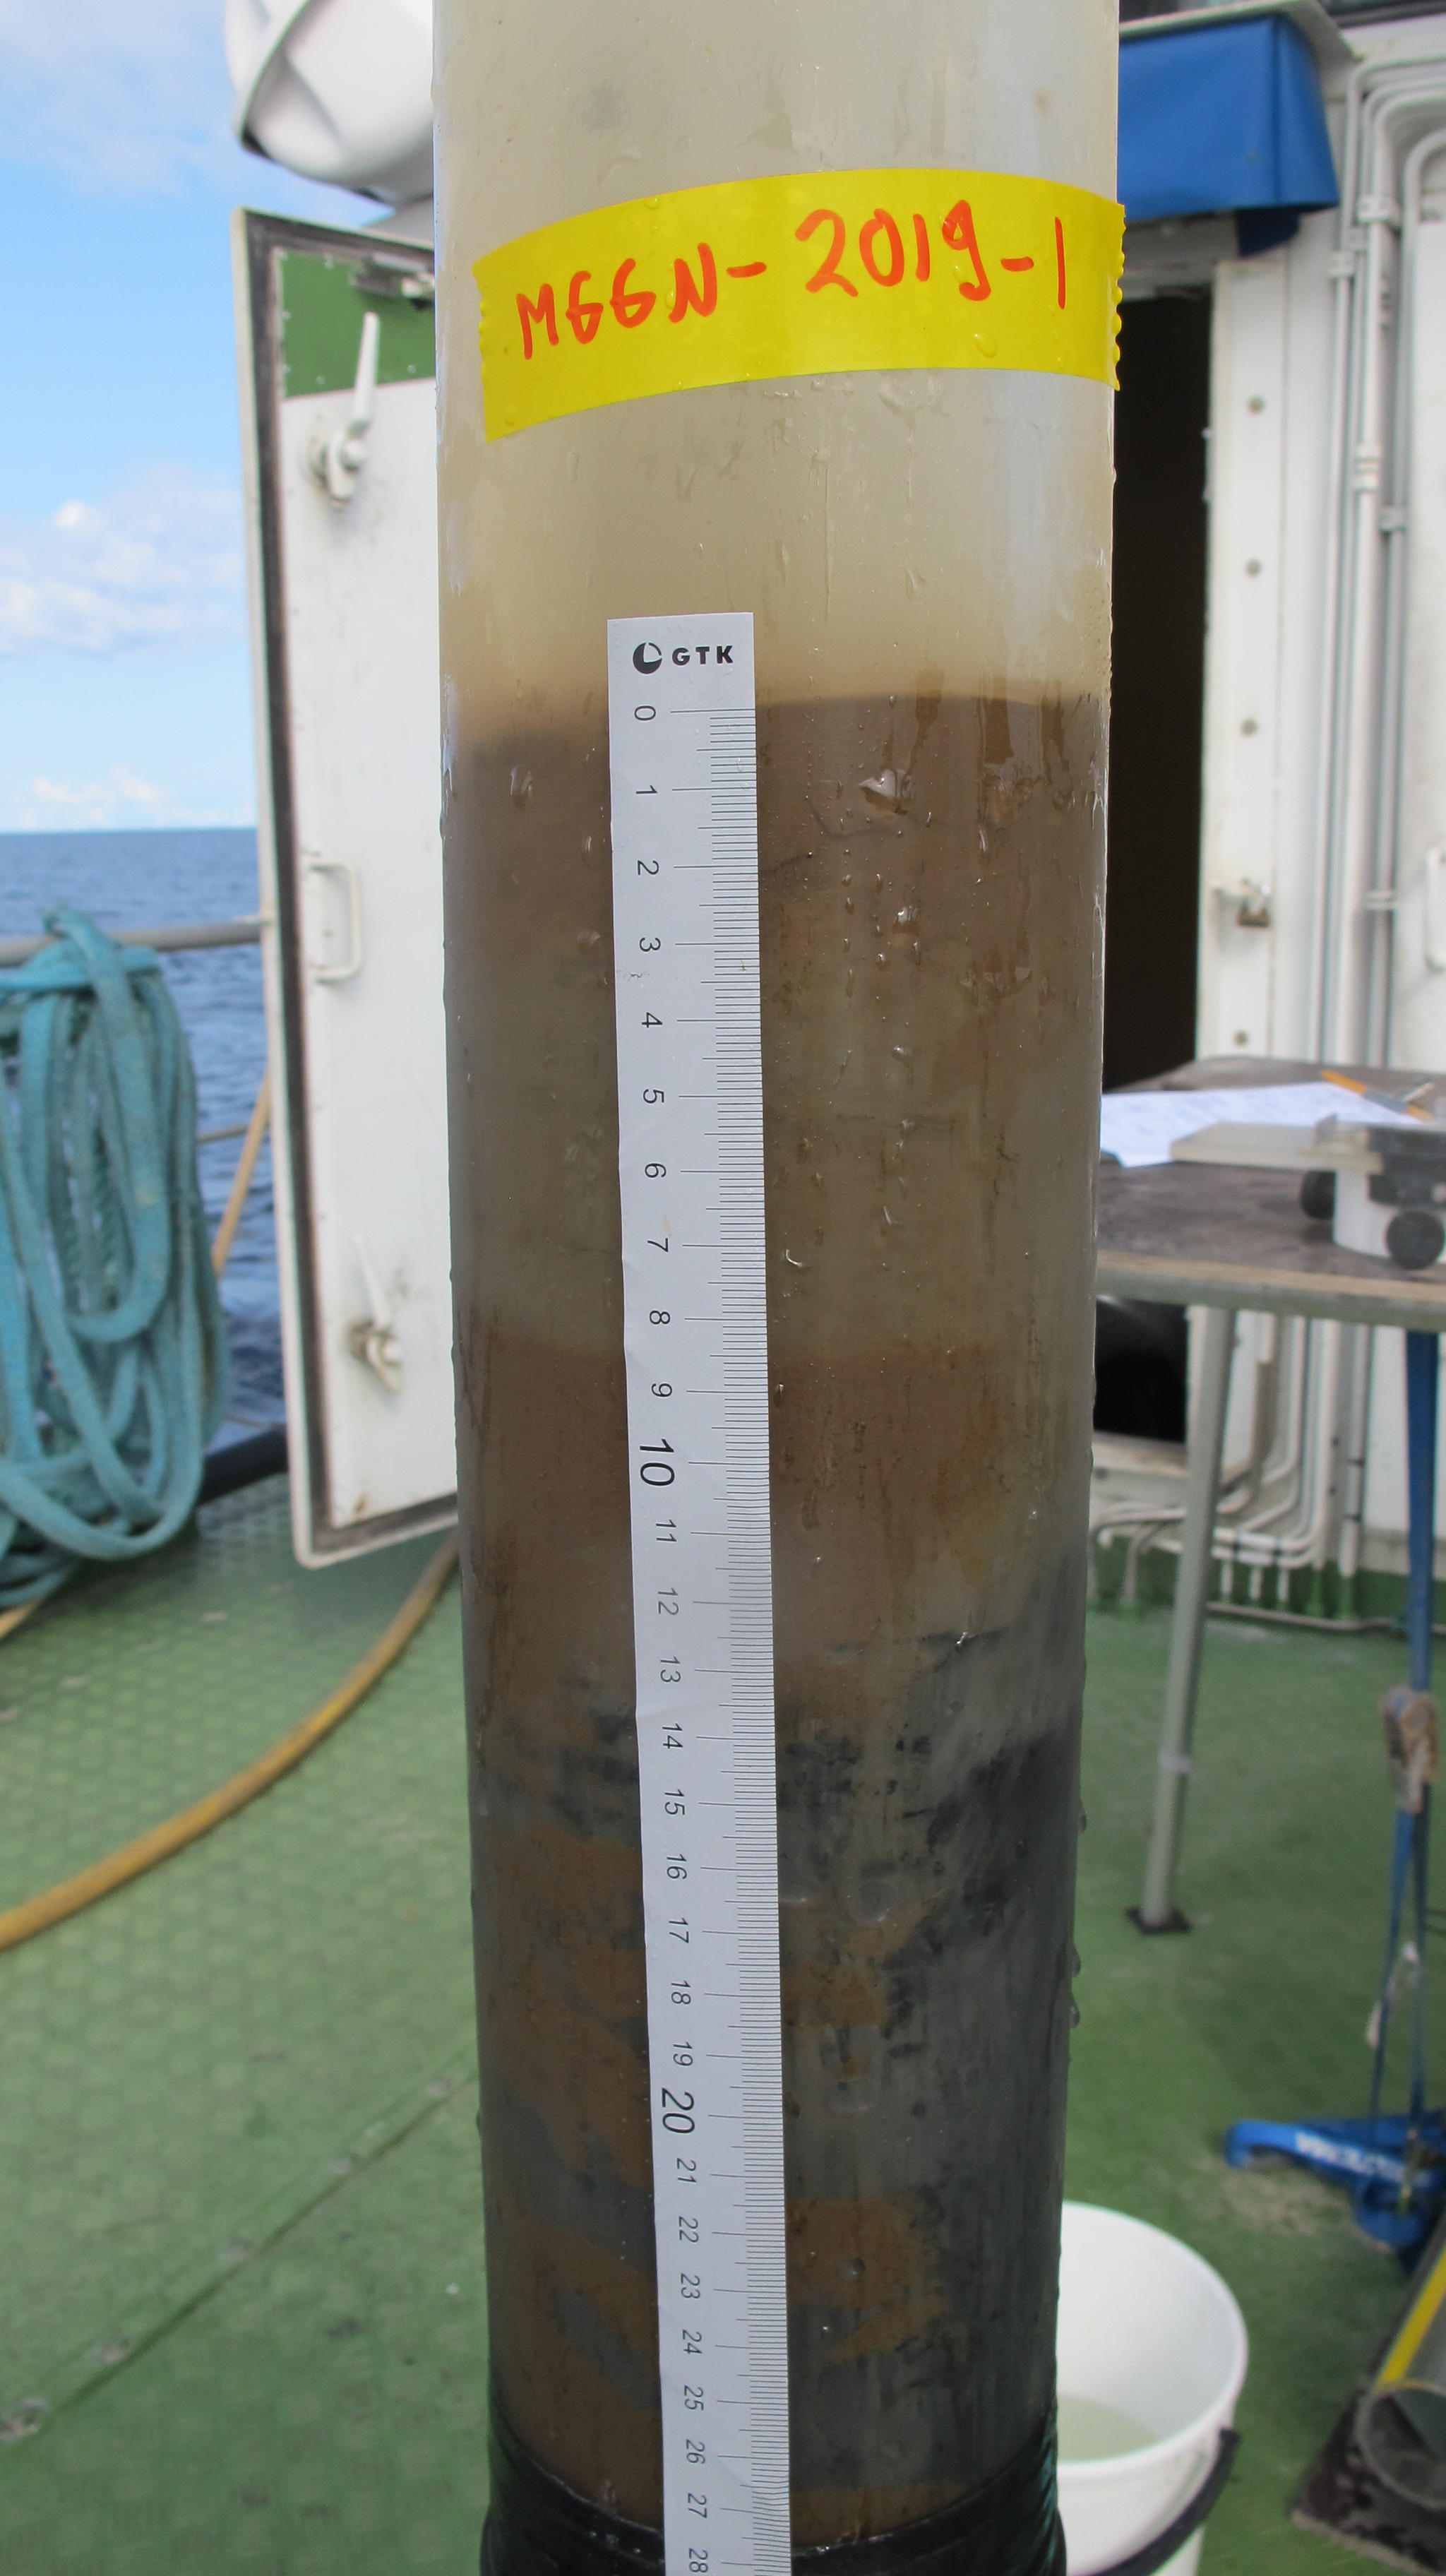 Sample tube full of mud.